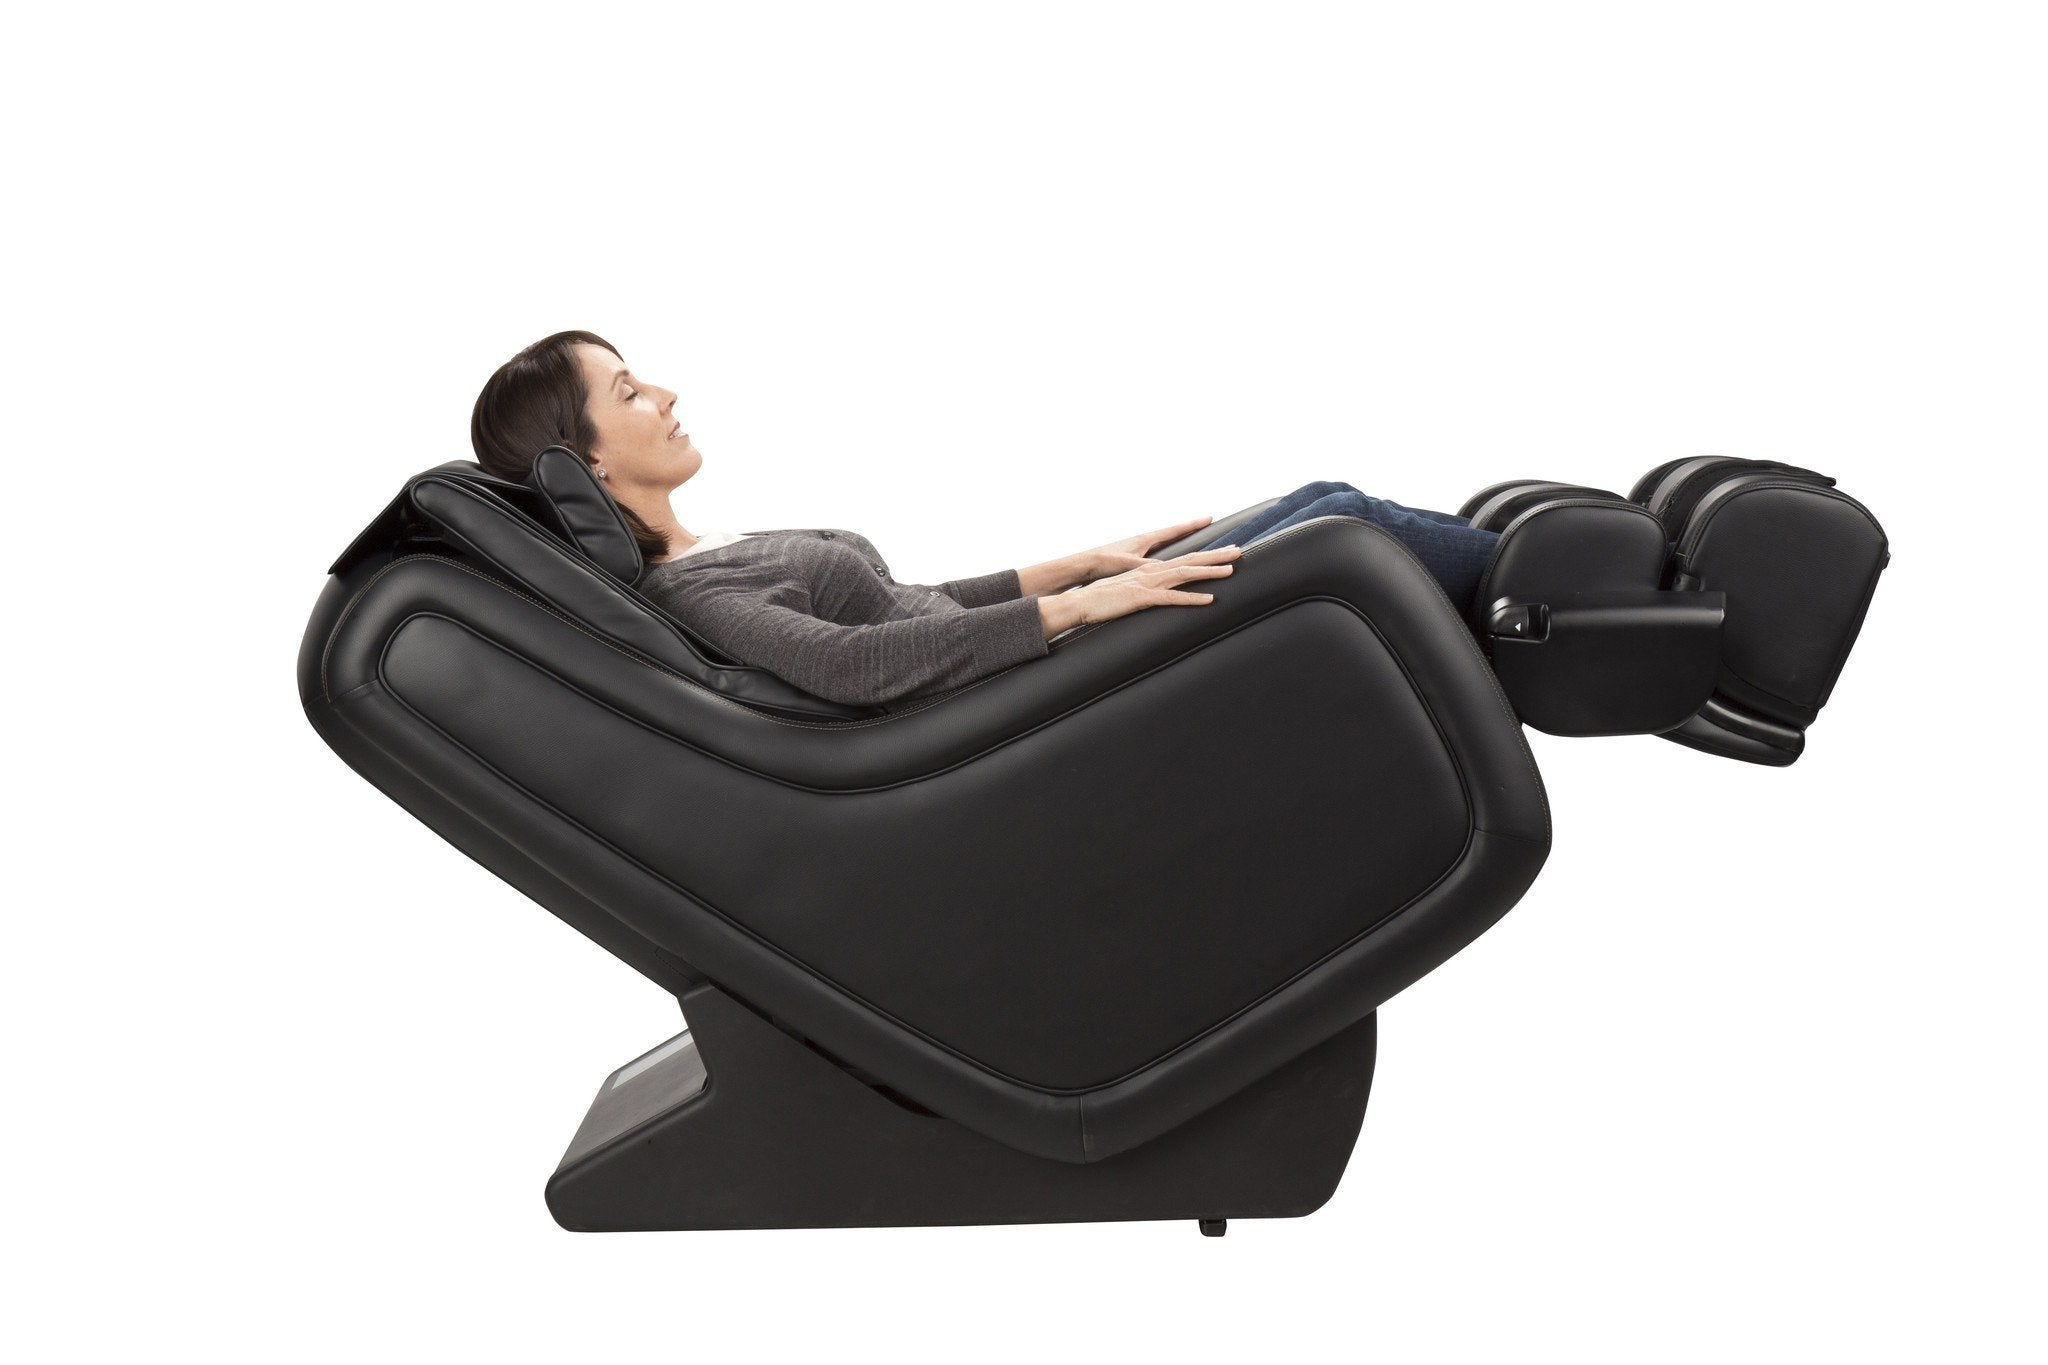 Human Touch ZeroG 5 0 Massage Chair Lowest Price Guarantee